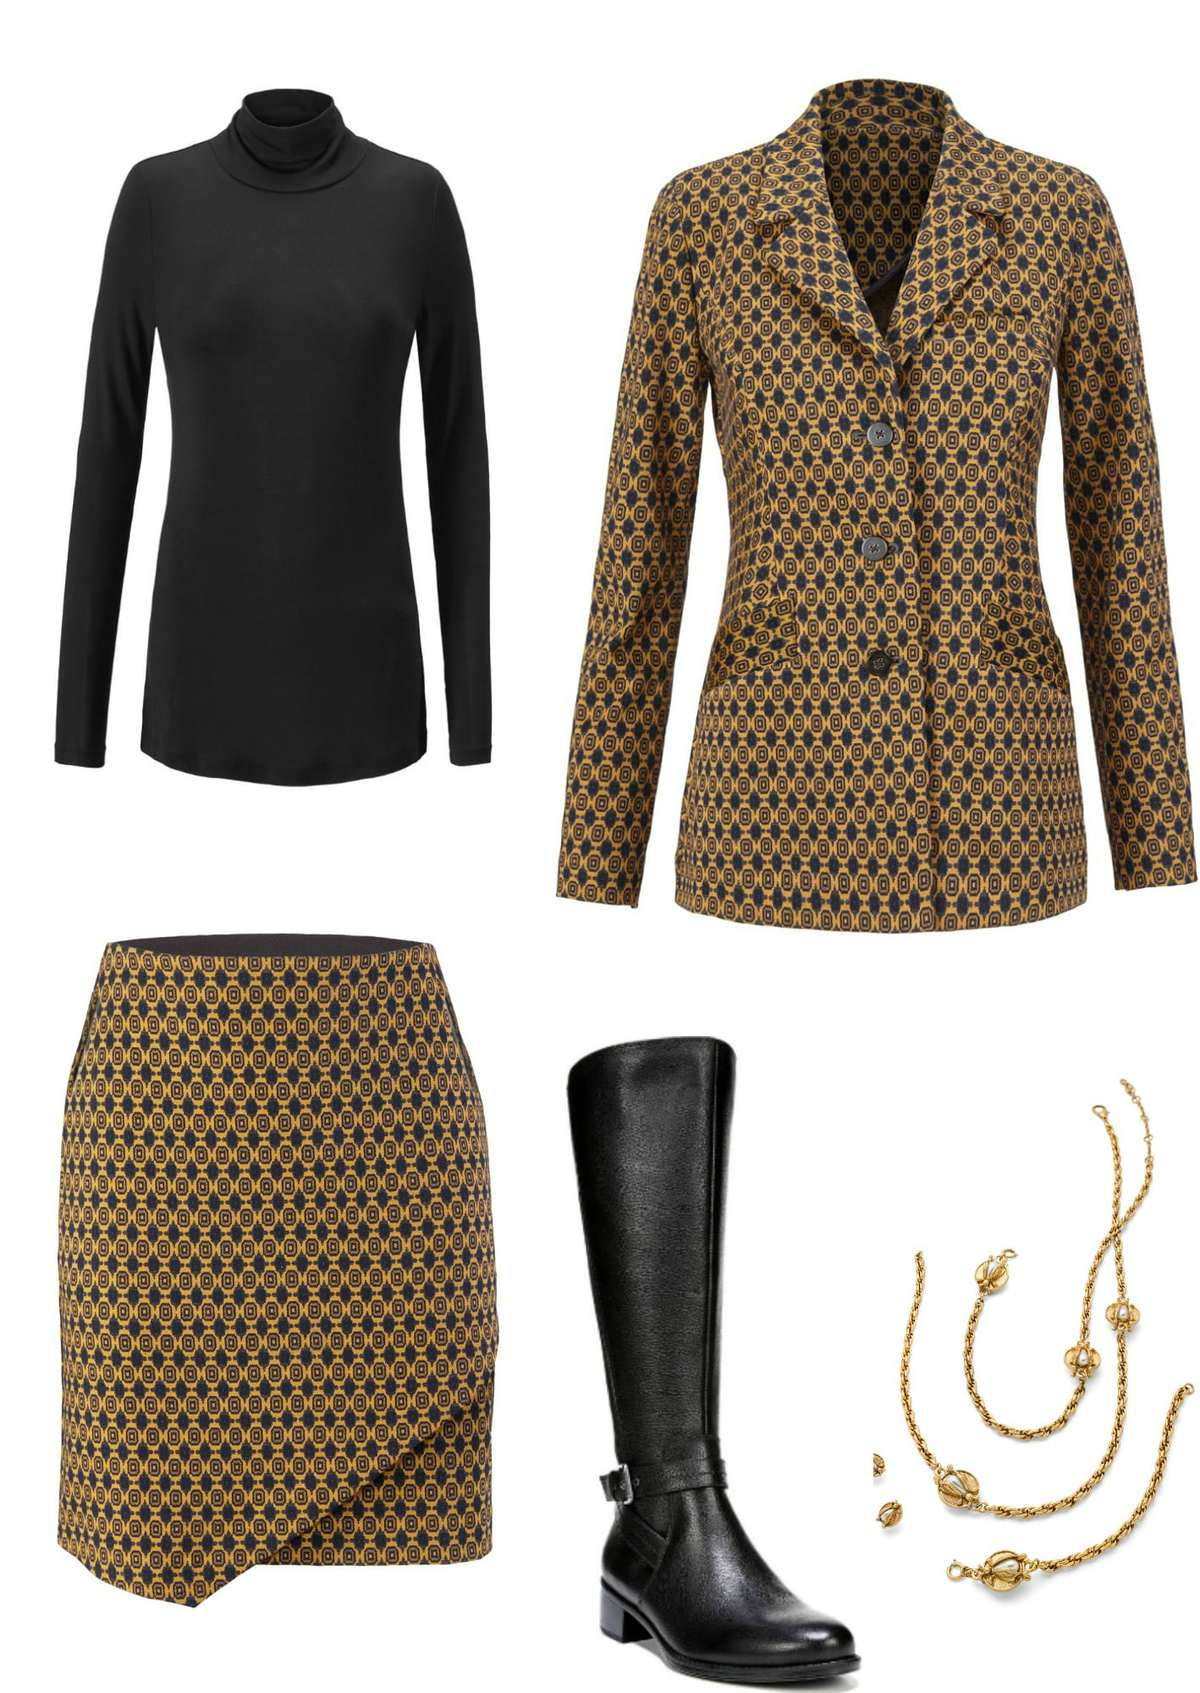 Ride Alone: A similar look to the previous, but a switch from pumps to the Naturalizer Winnie riding boots give a different effect.  Add opaque black tights for warmth and a sleek leggy effect.